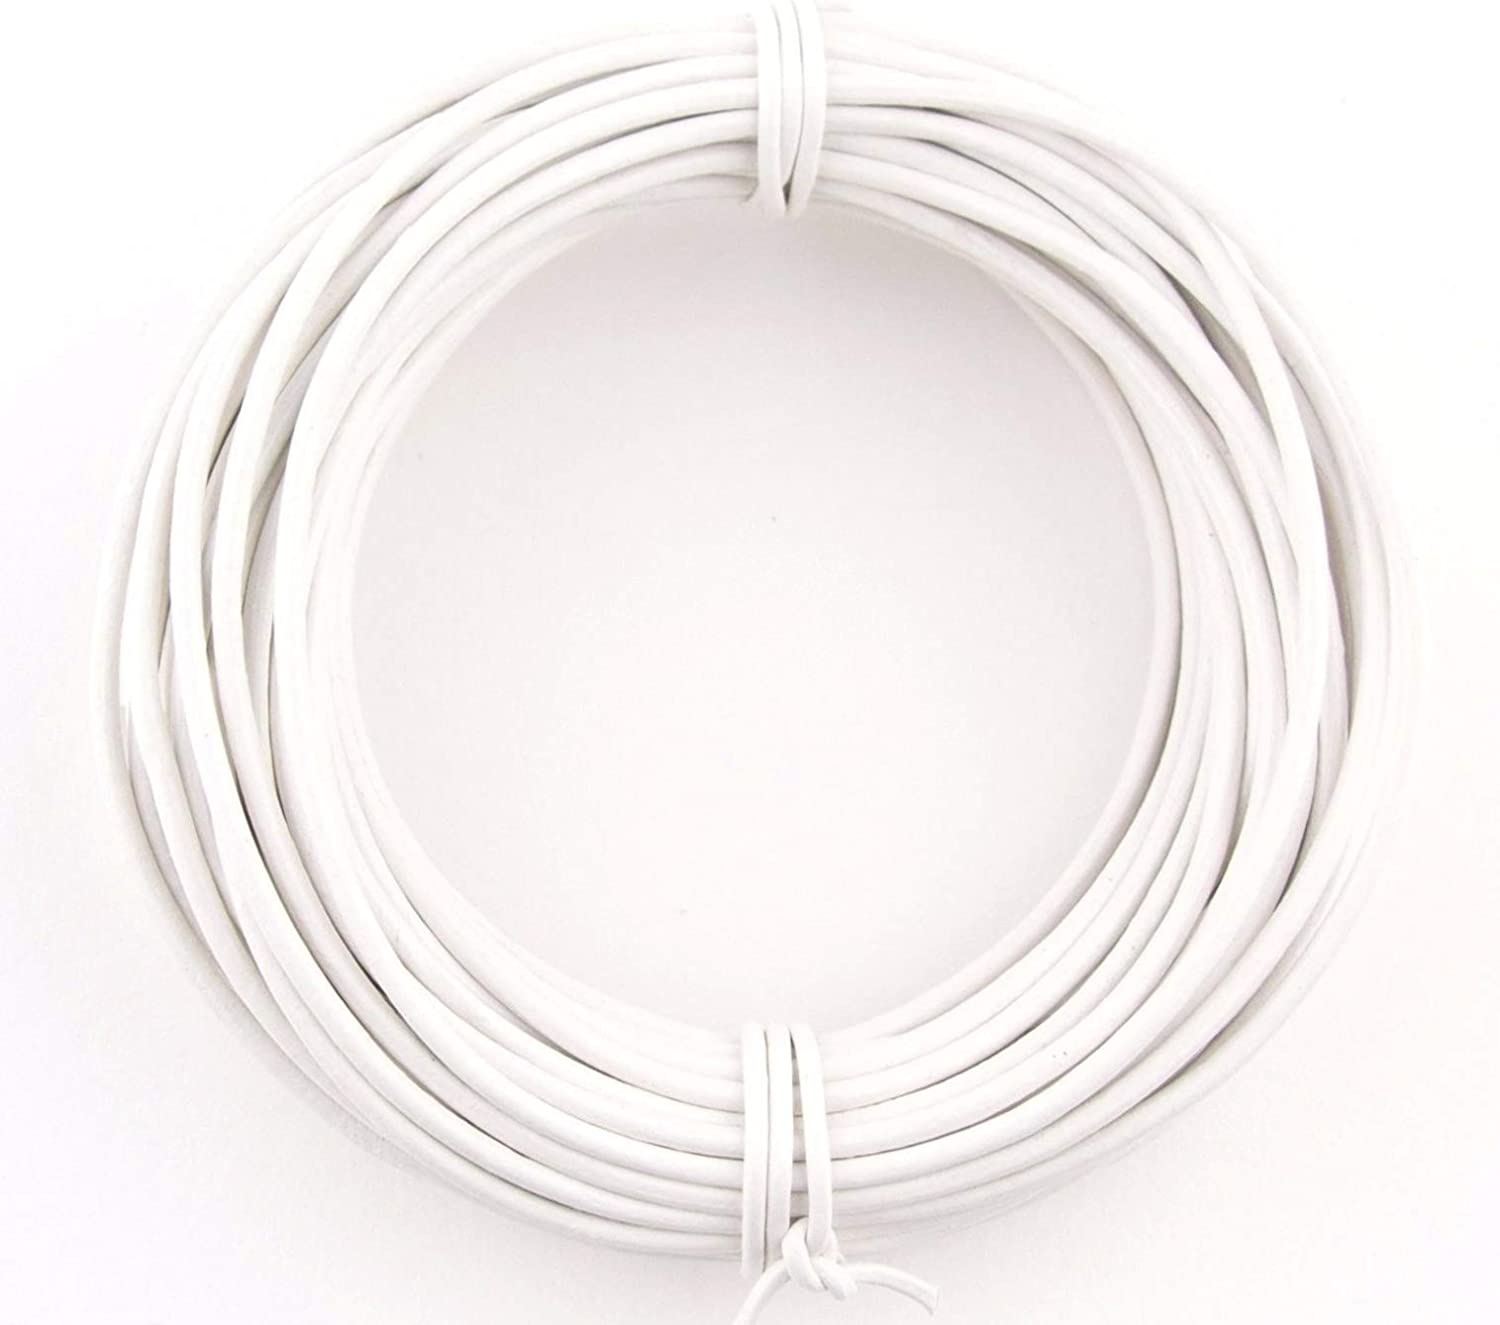 White Round Leather Cord 1.5mm 10 meters 11 yards